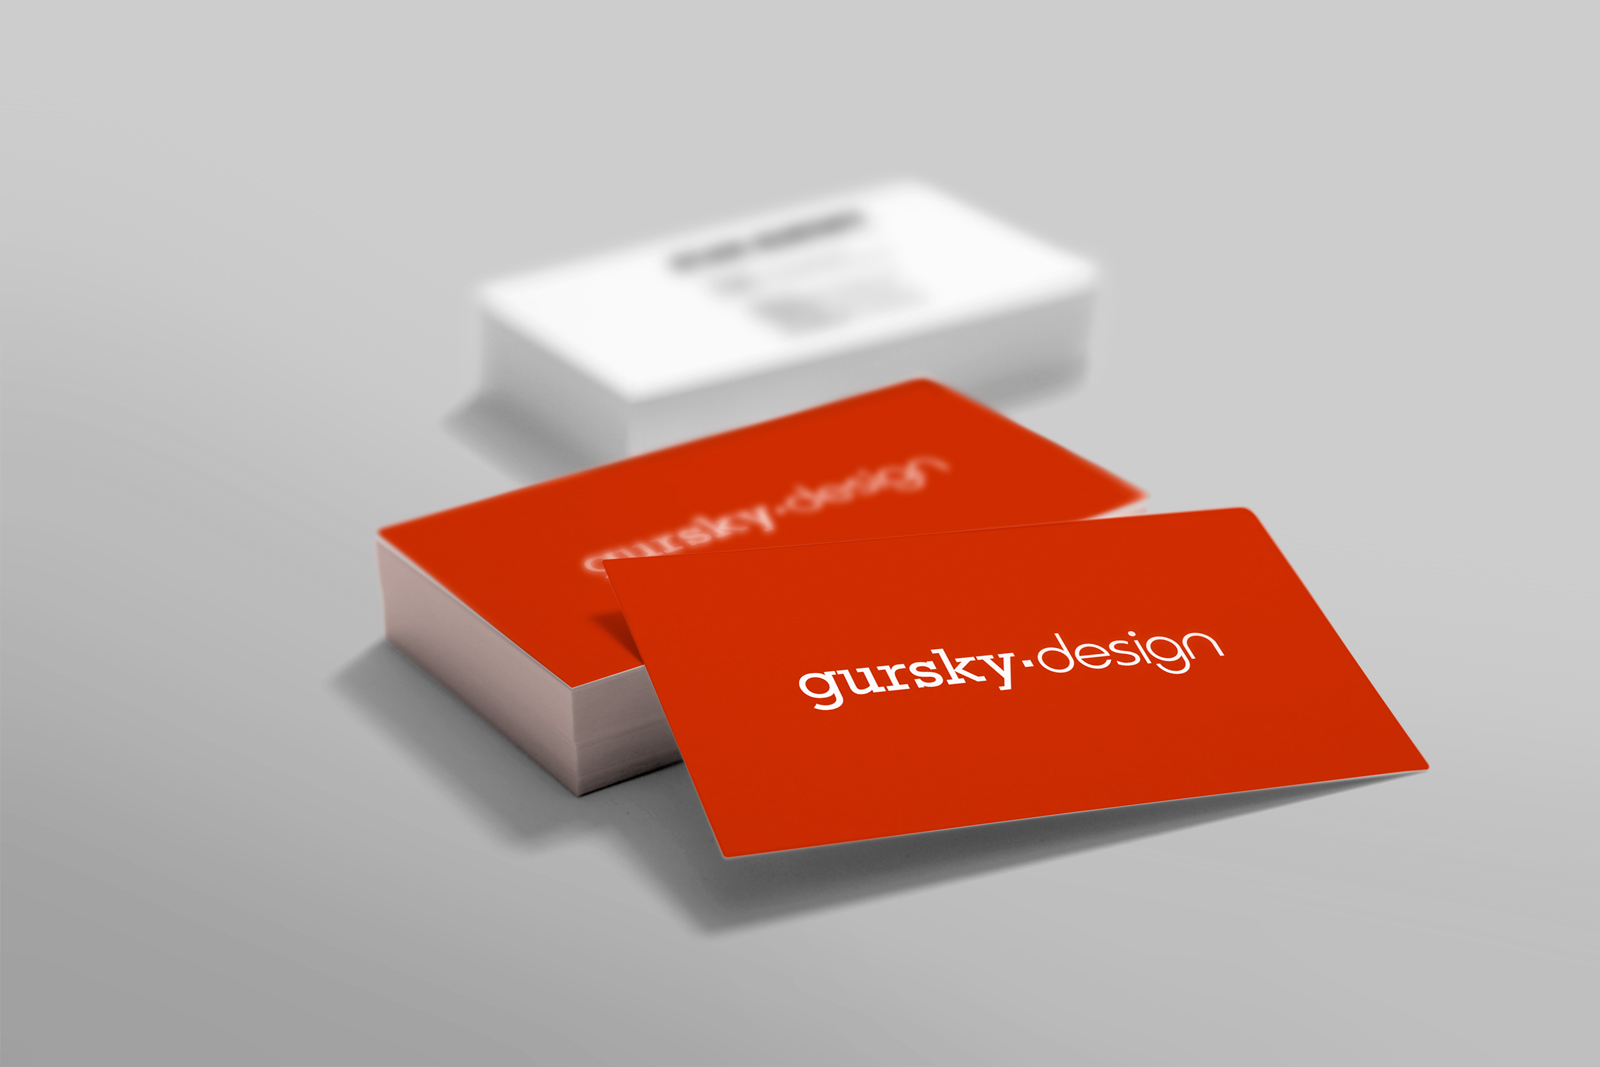 Gursky Design - Business cards